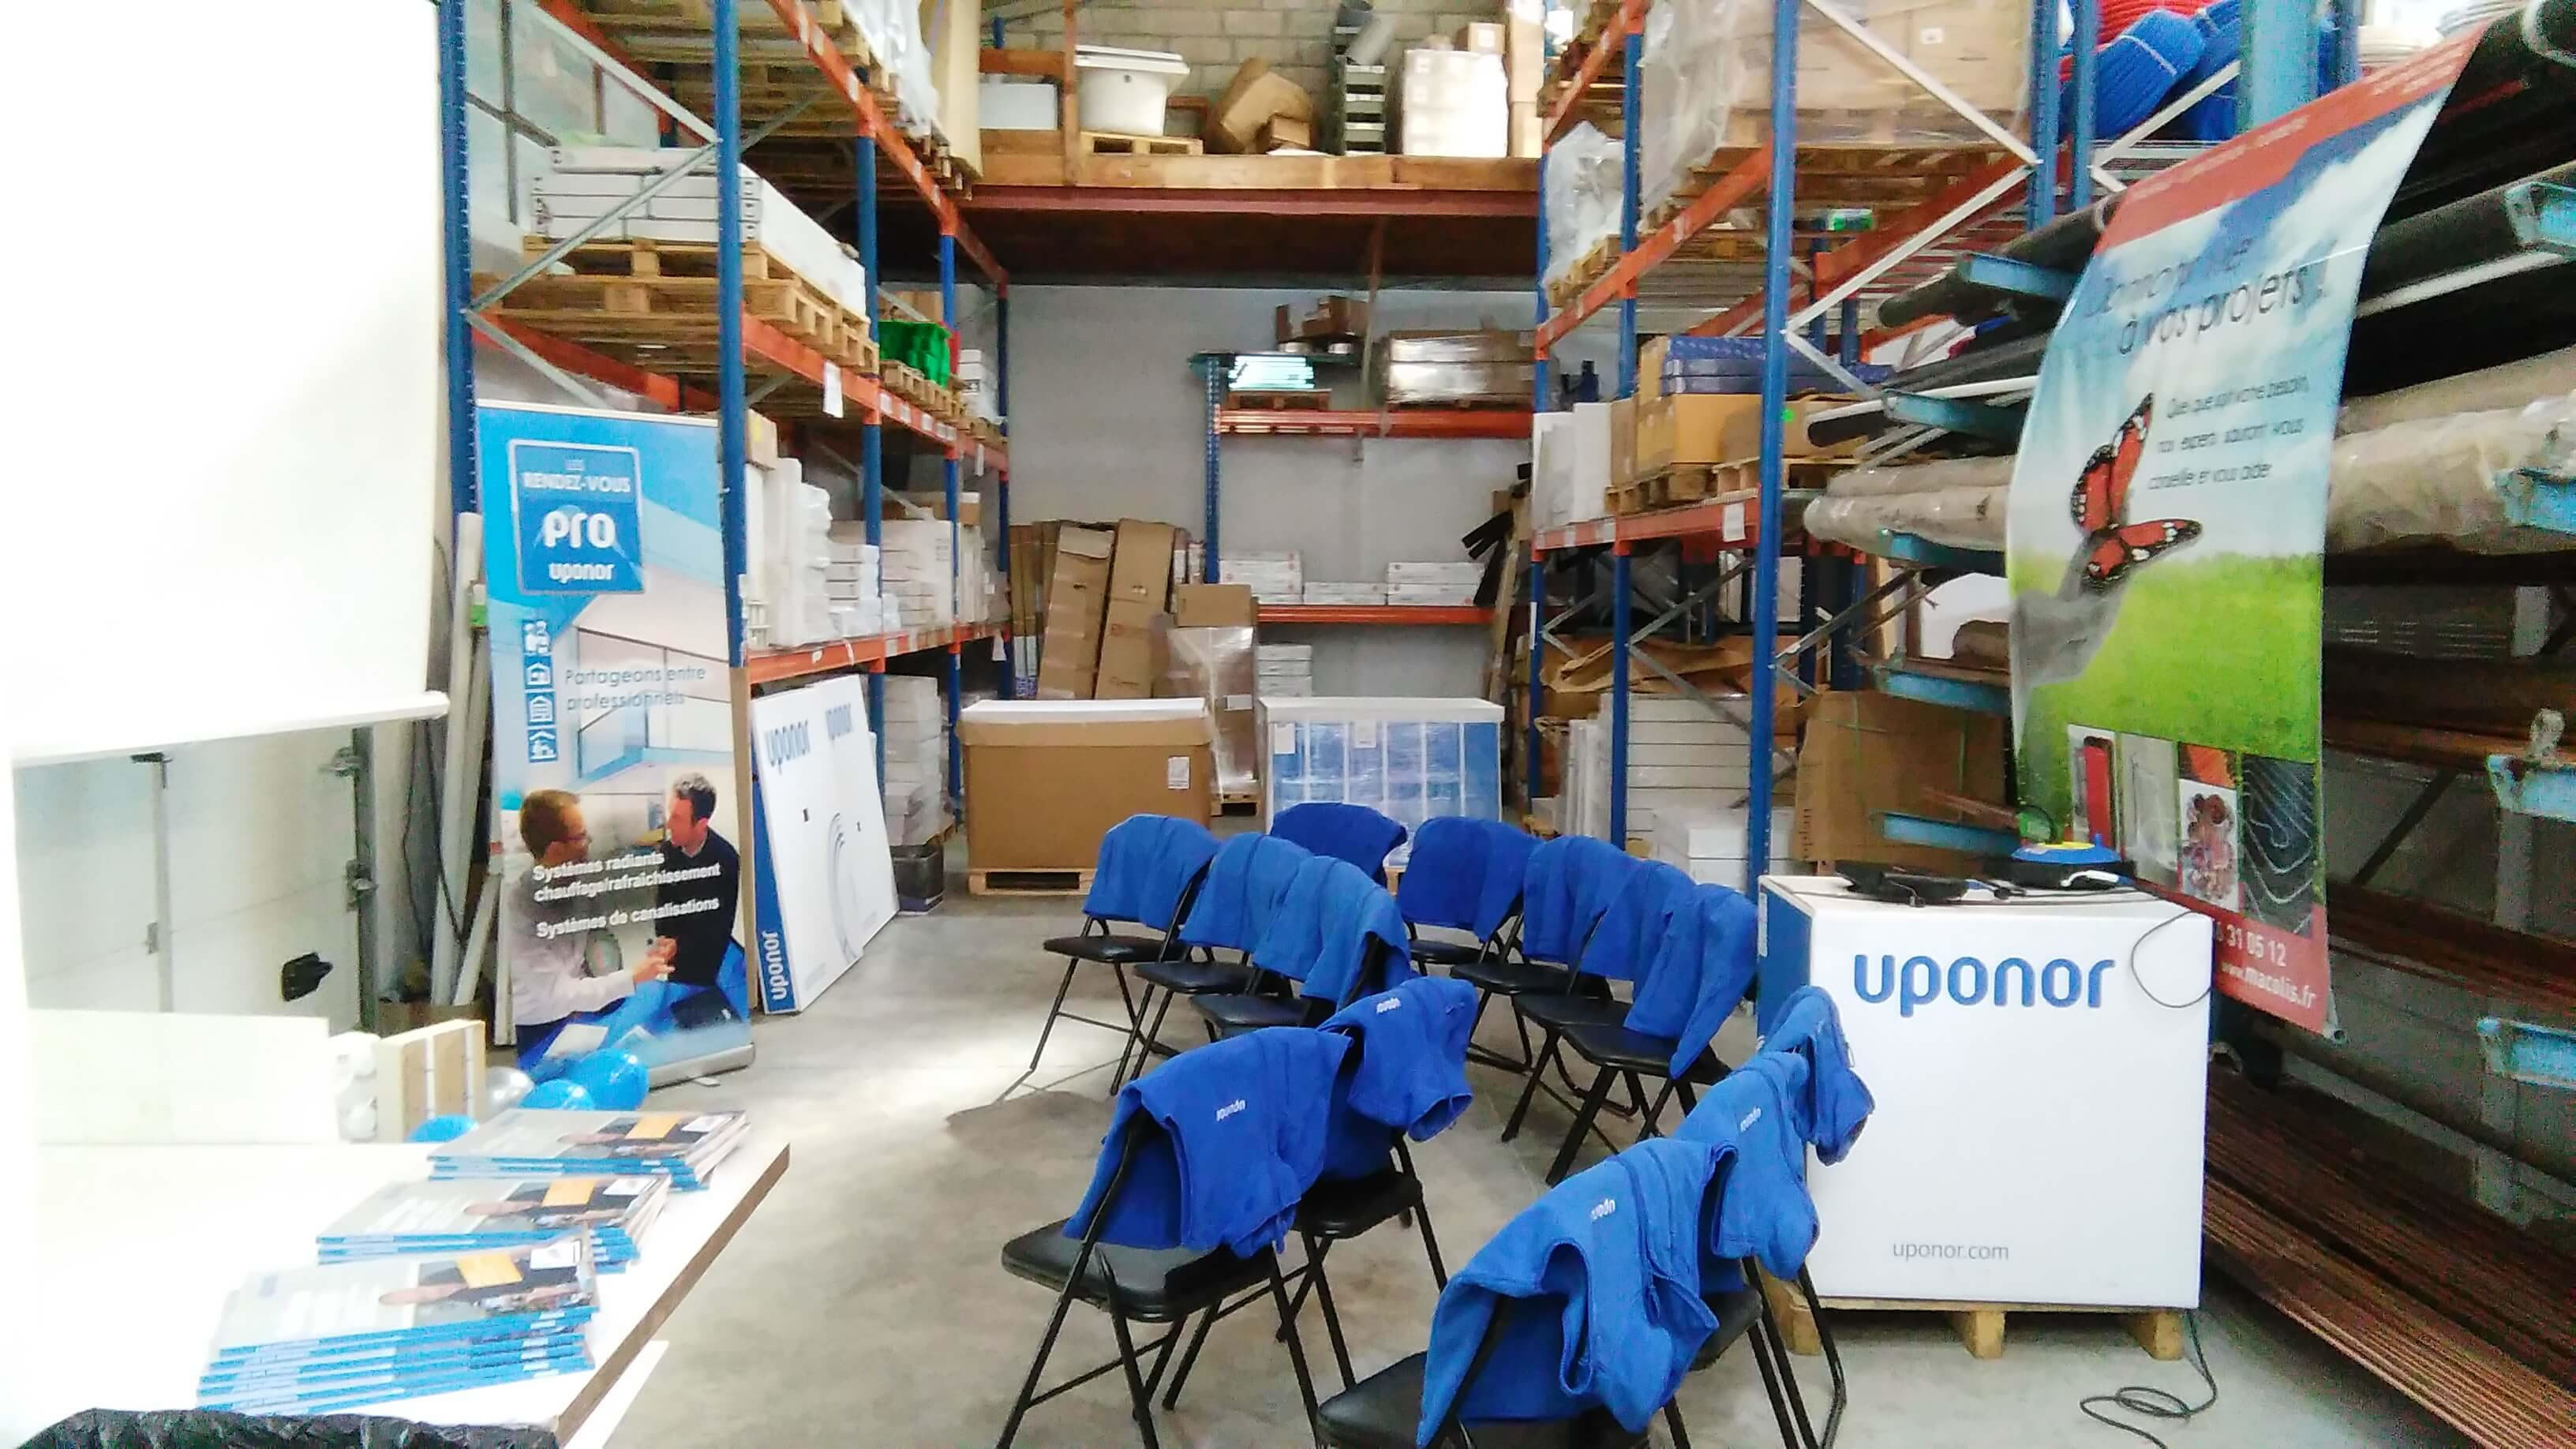 Uponor3